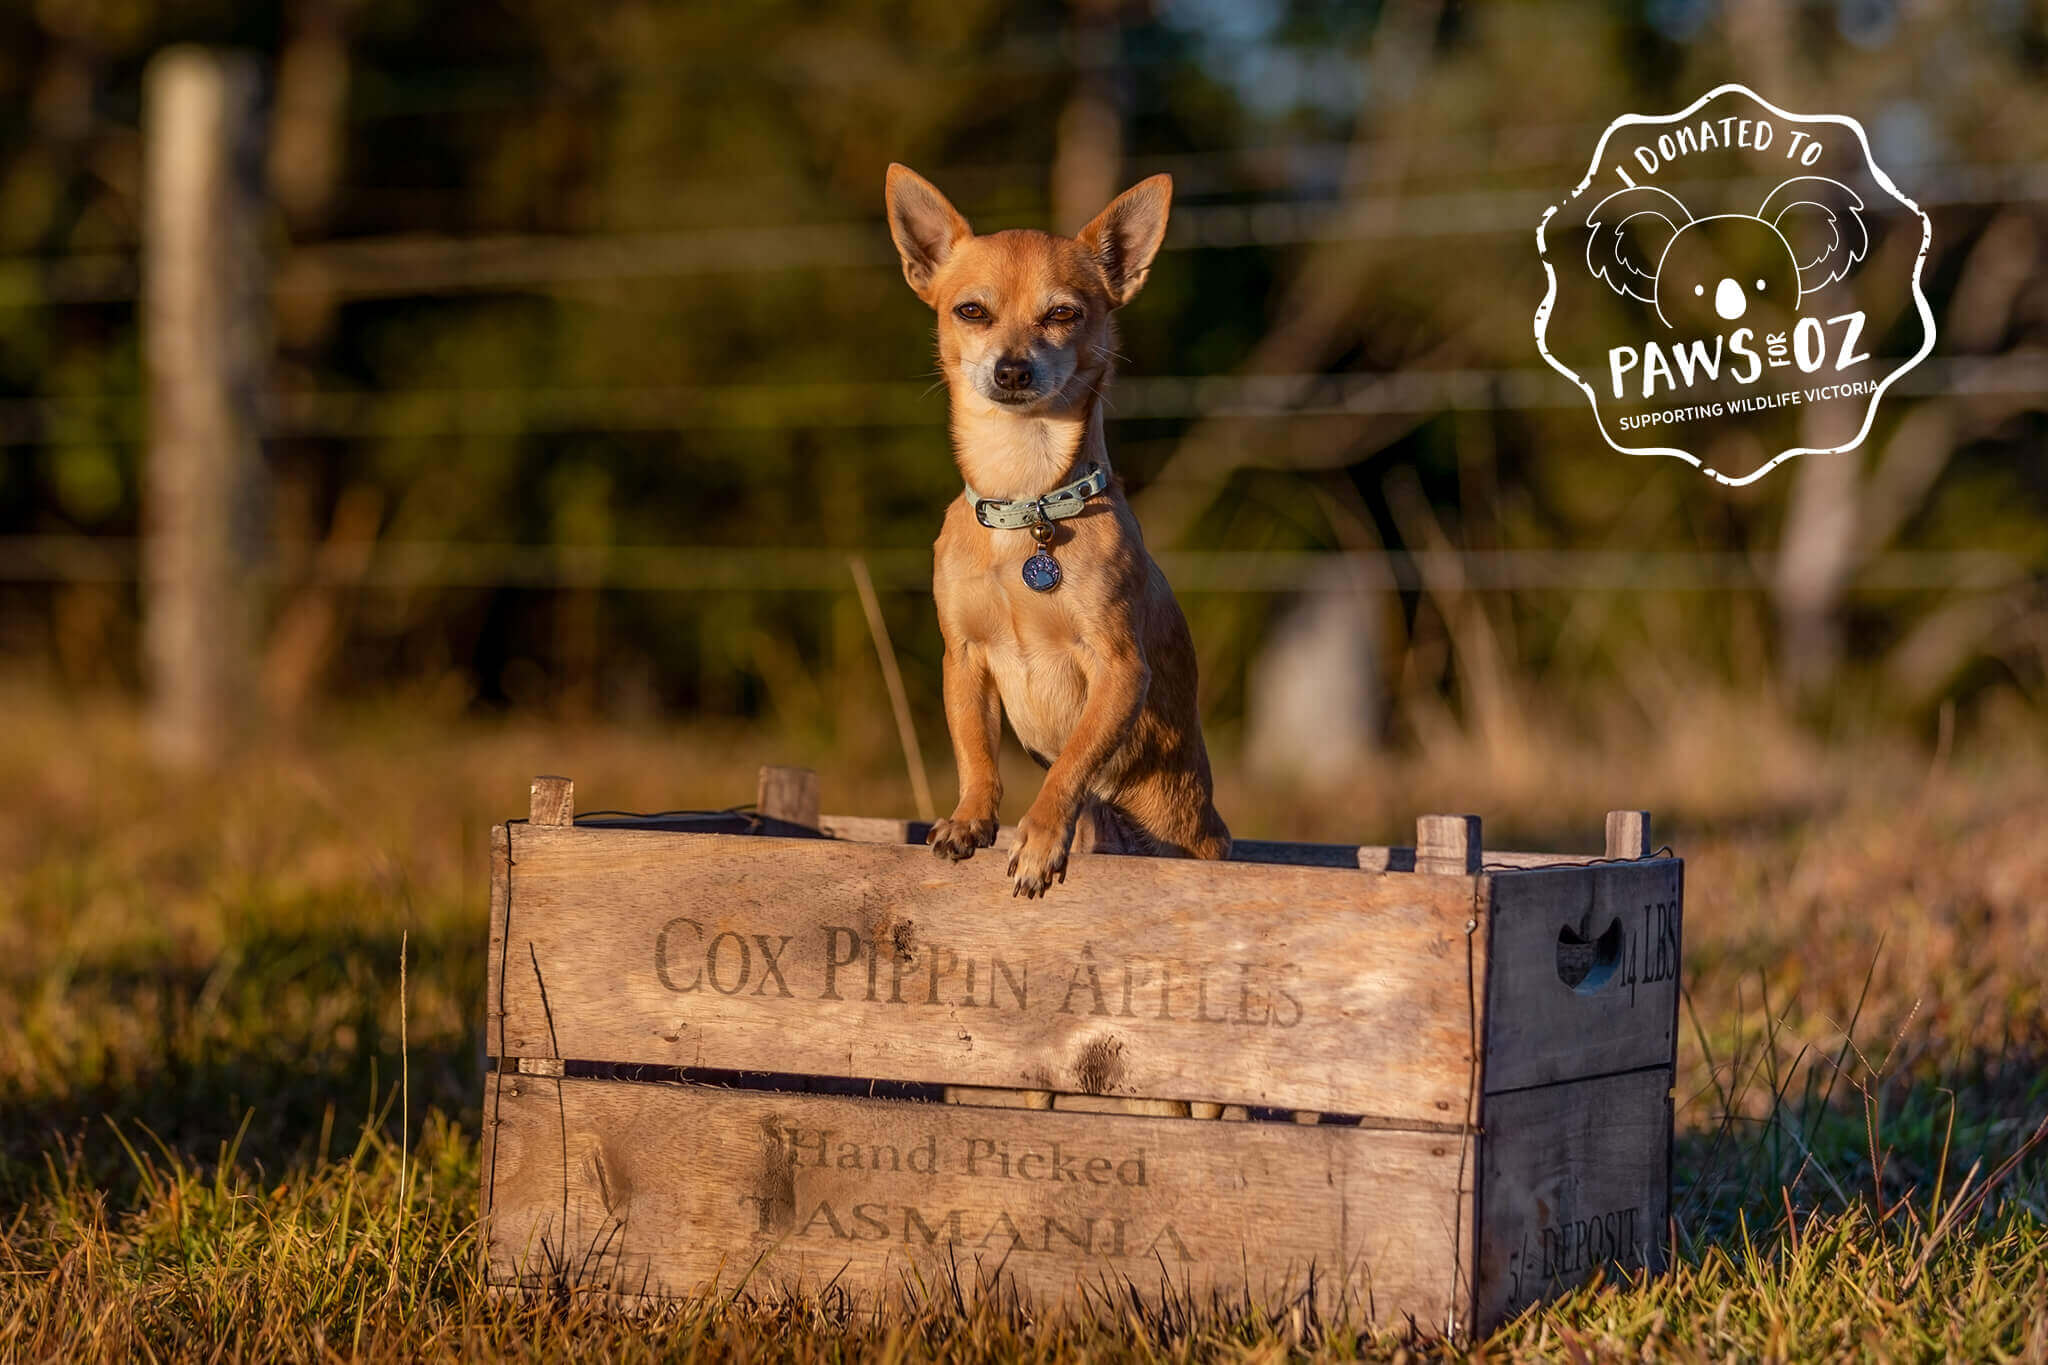 Paws for Oz - Fundraising for Wildlife Victoria. Chico on the Farm in an Apple Box